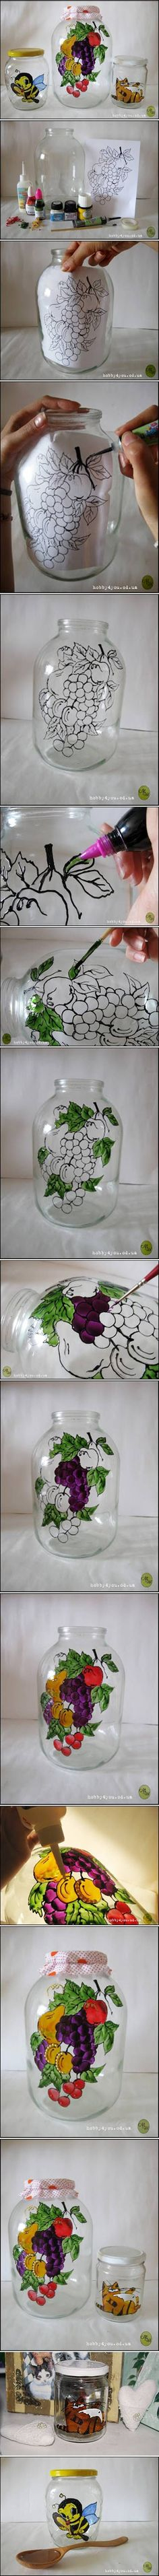 DIY Jar Painting Decor